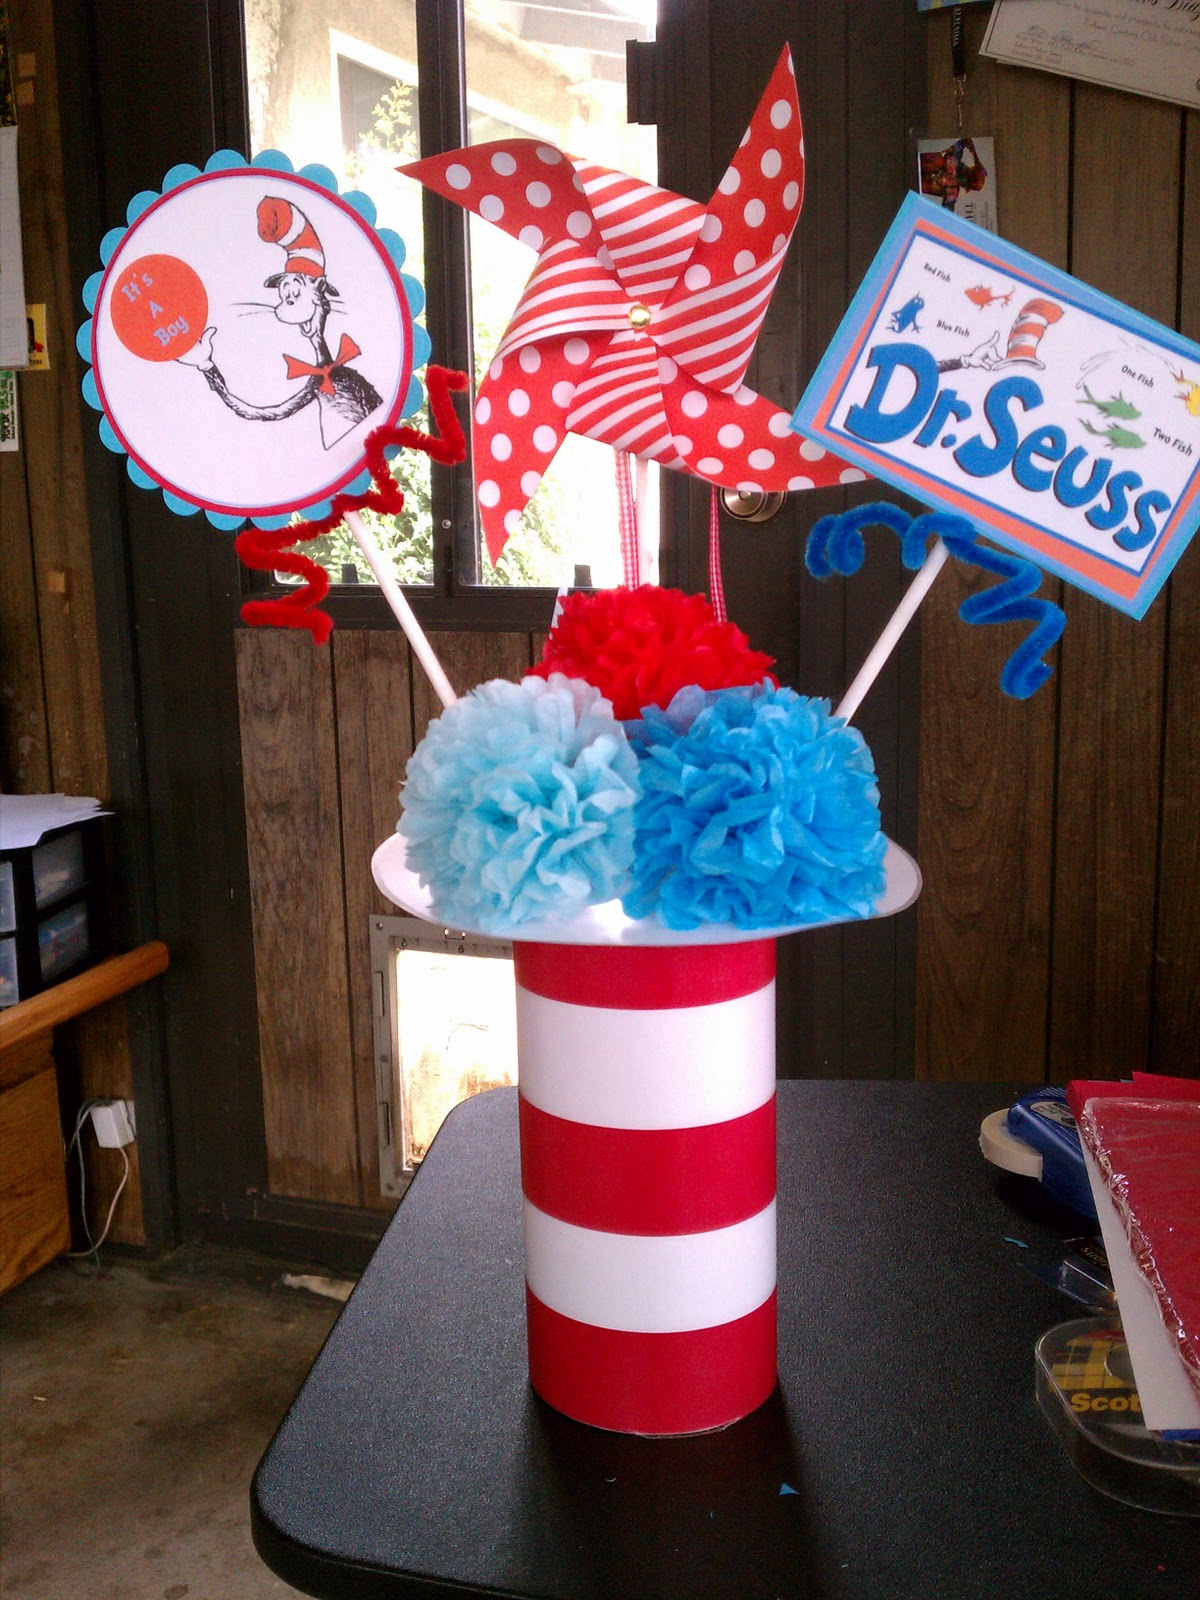 Kc 39 s creations dr seuss baby shower for Baby shop decoration ideas